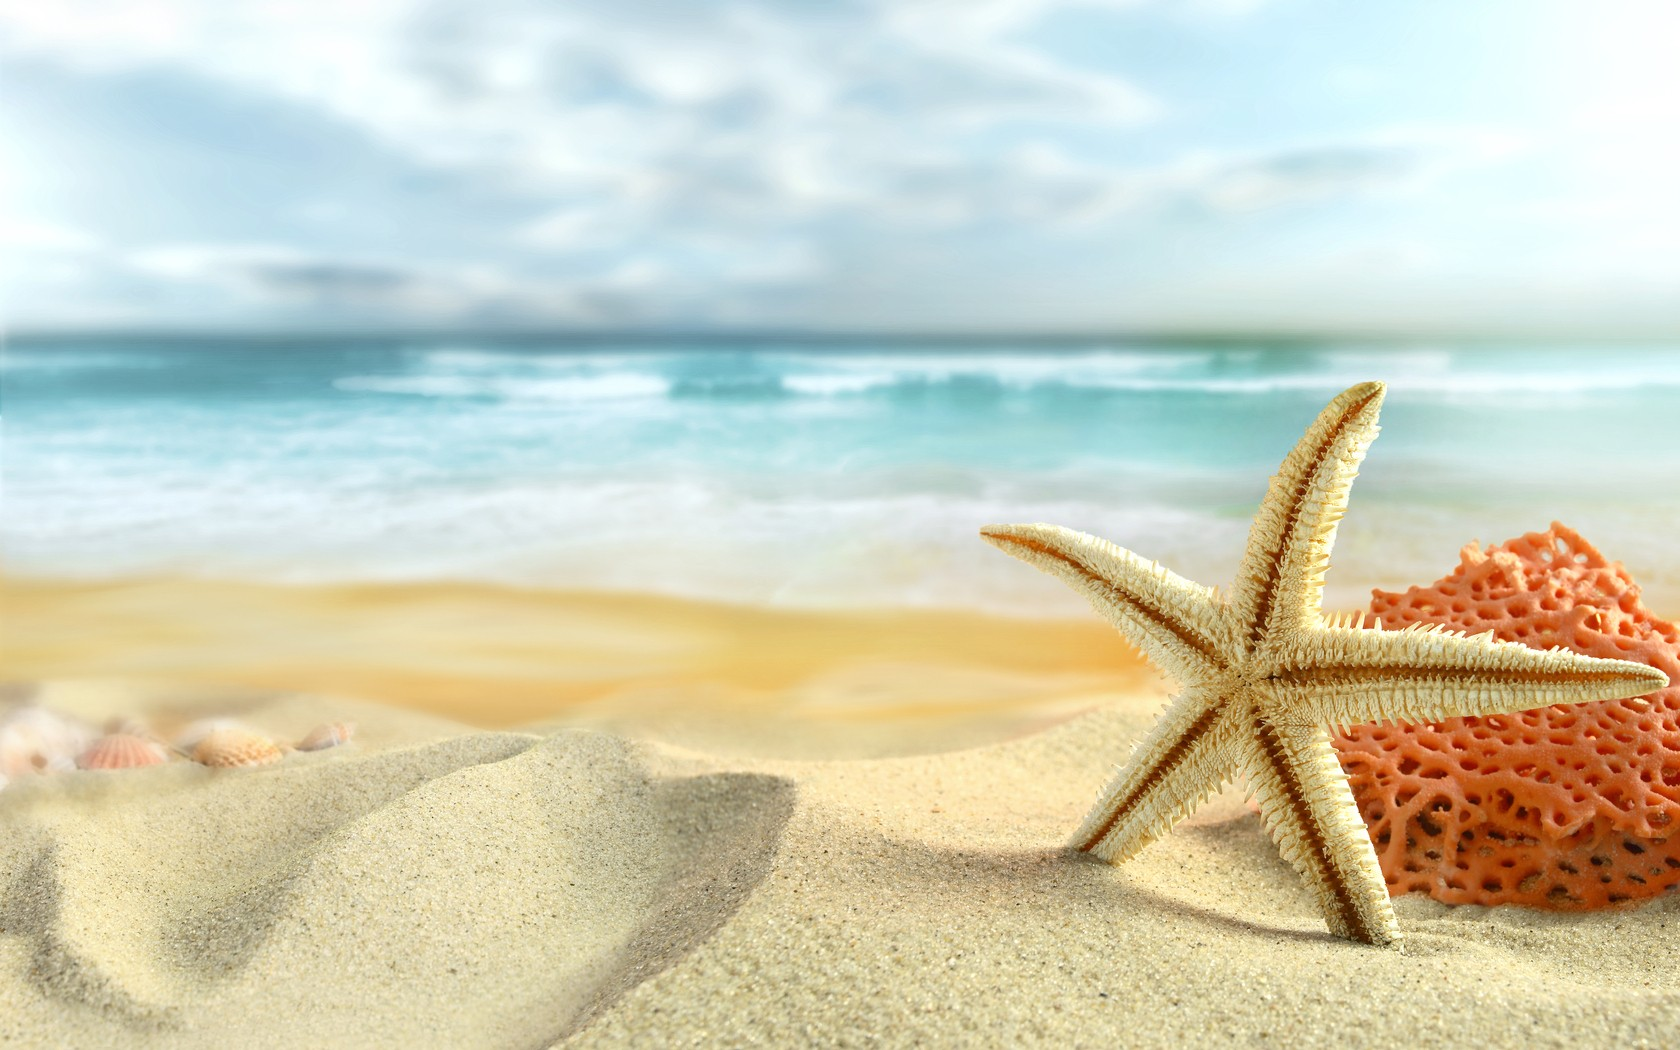 Ocean sand stars starfish sea beaches wallpaper 1680x1050 184243 1680x1050